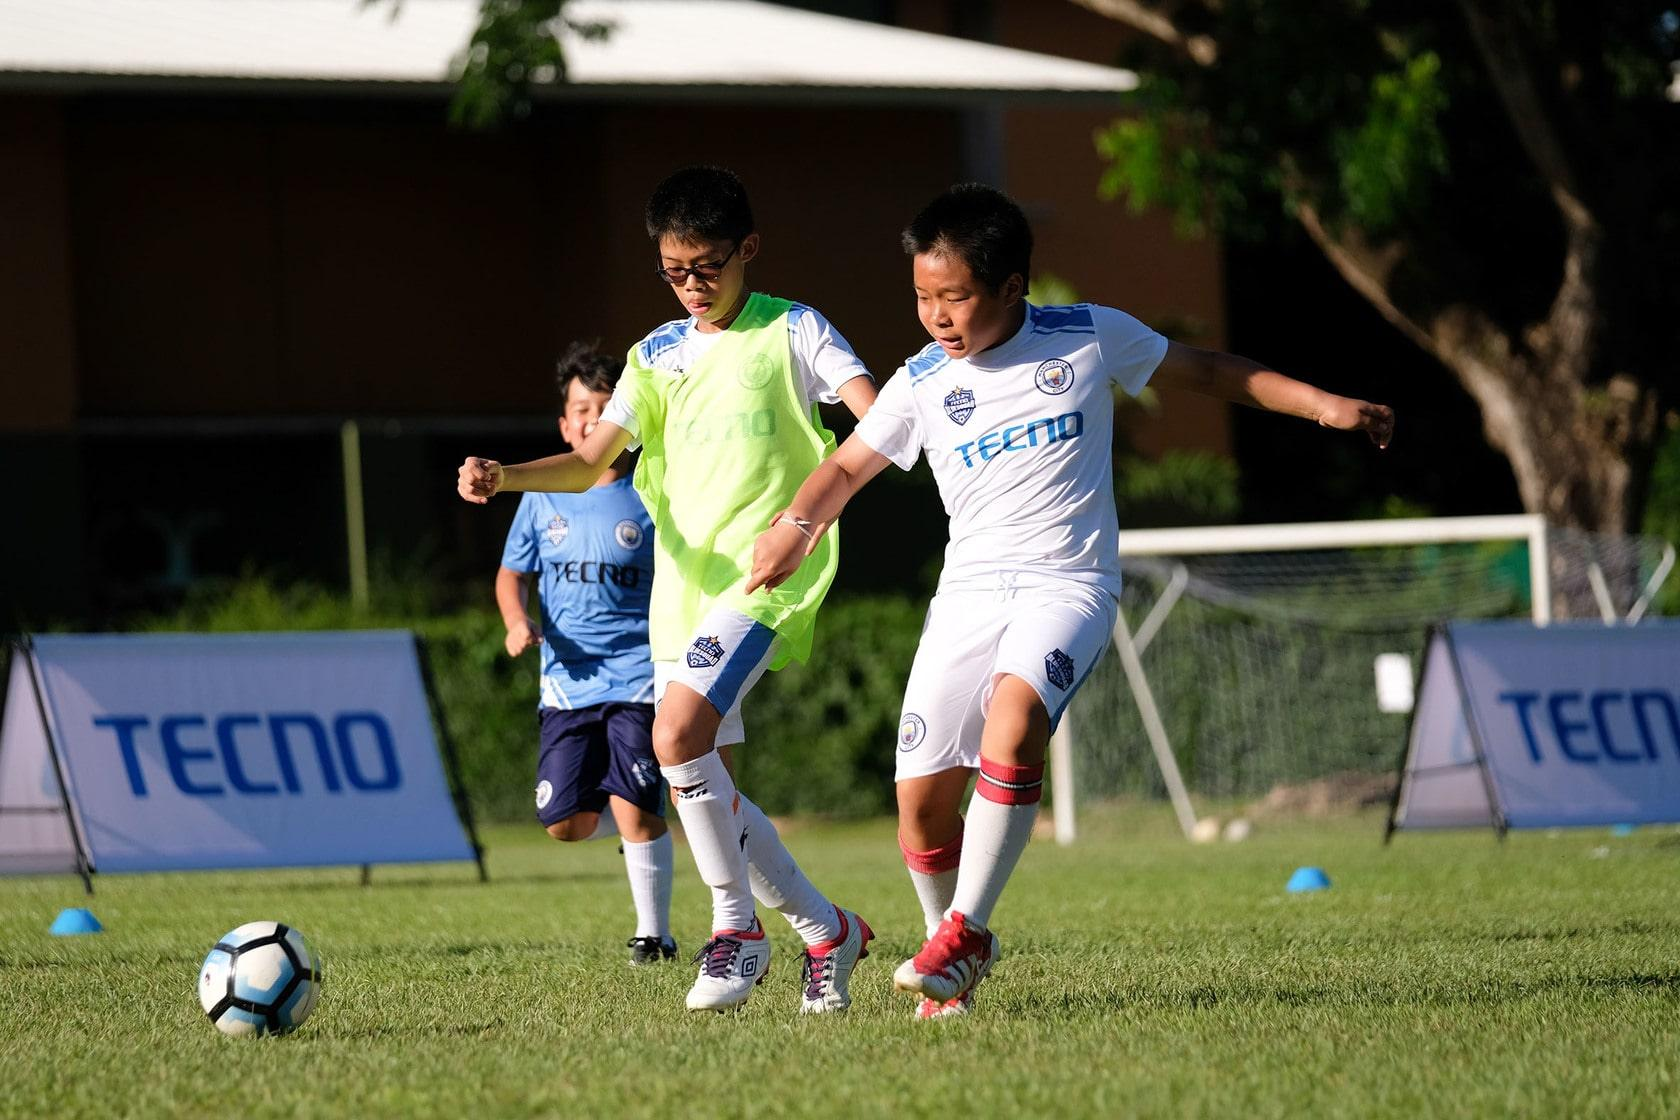 TECNO Mobile and Manchester City Football Club developing Thai youth